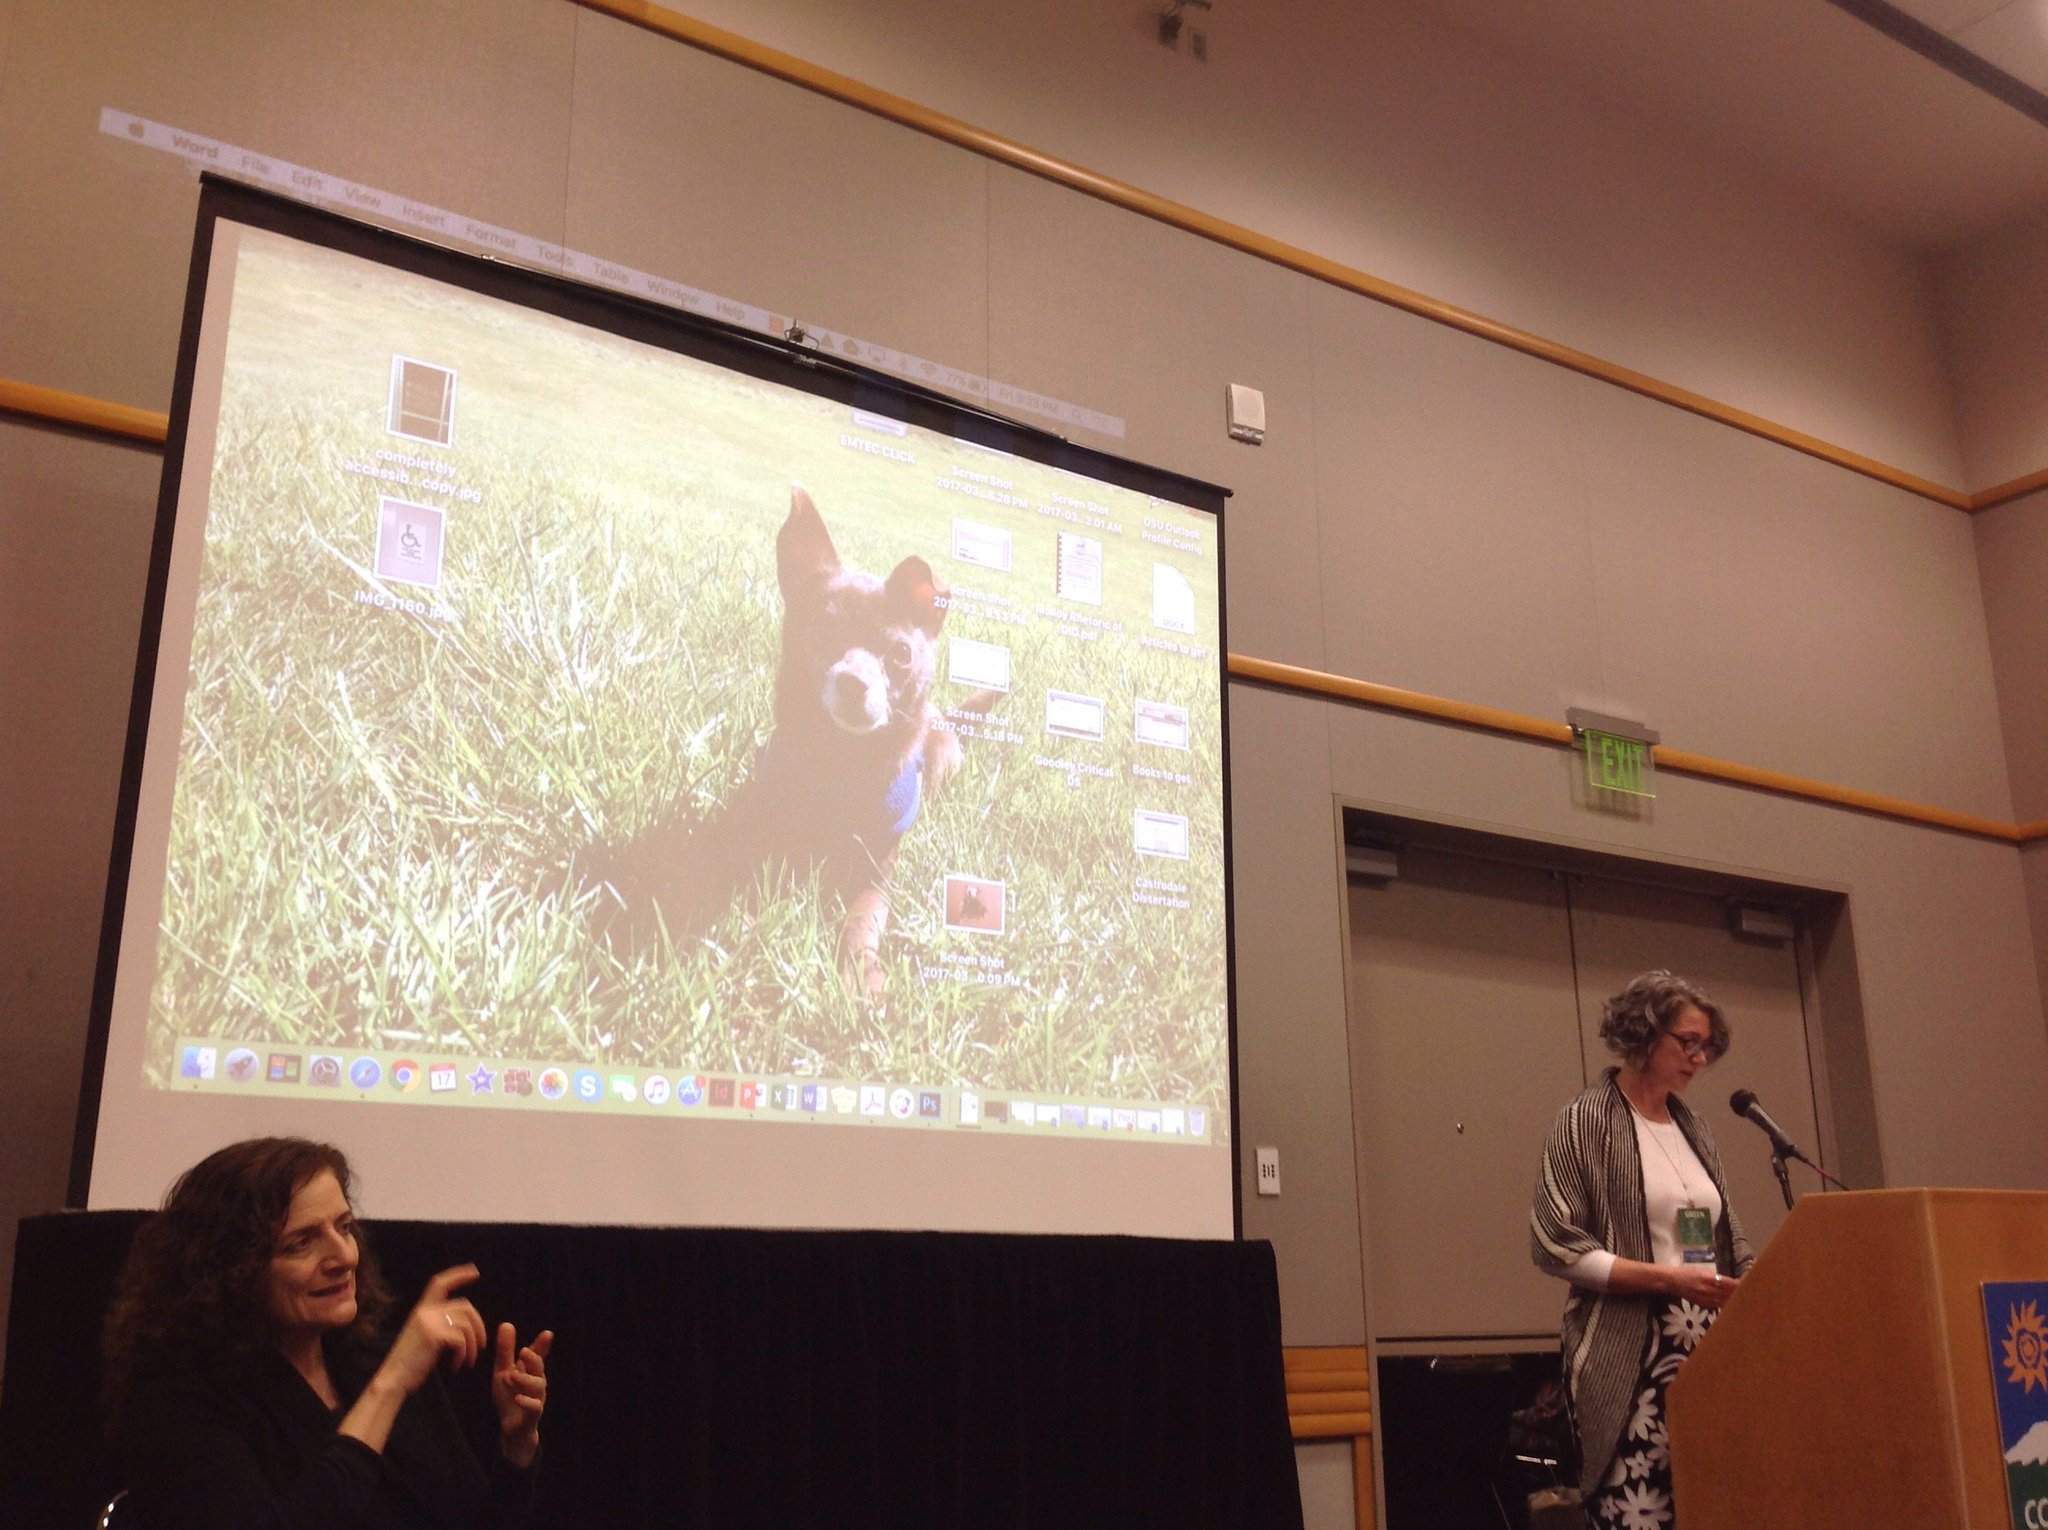 Kicking off #k52 with a cameo from Ivy a la @pricemargaret's open laptop! #dis #4C17 https://t.co/LsM55YET7i